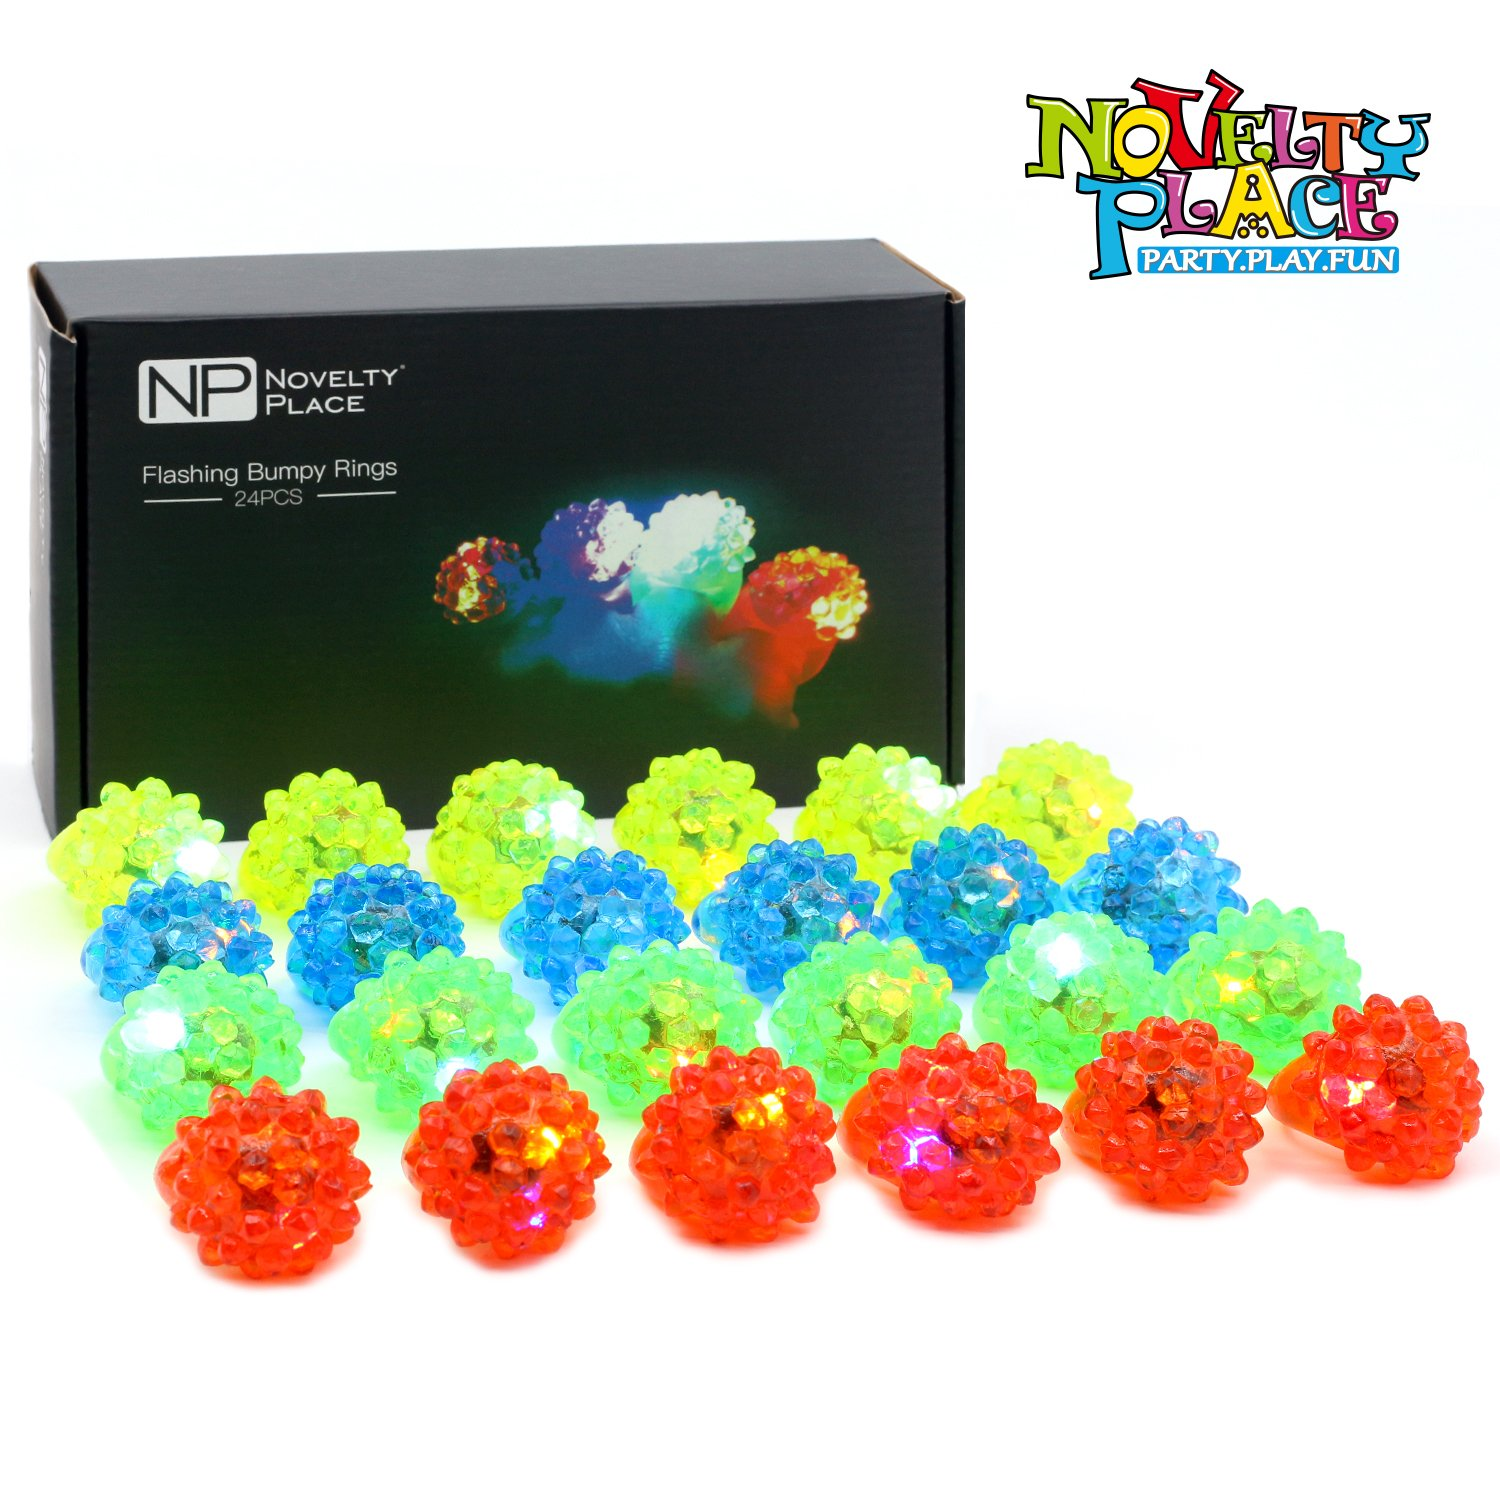 Novelty Place Party Stars Flashing LED Bumpy Jelly Ring Light-Up Toys (24 Pack) by Novelty Place (Image #7)